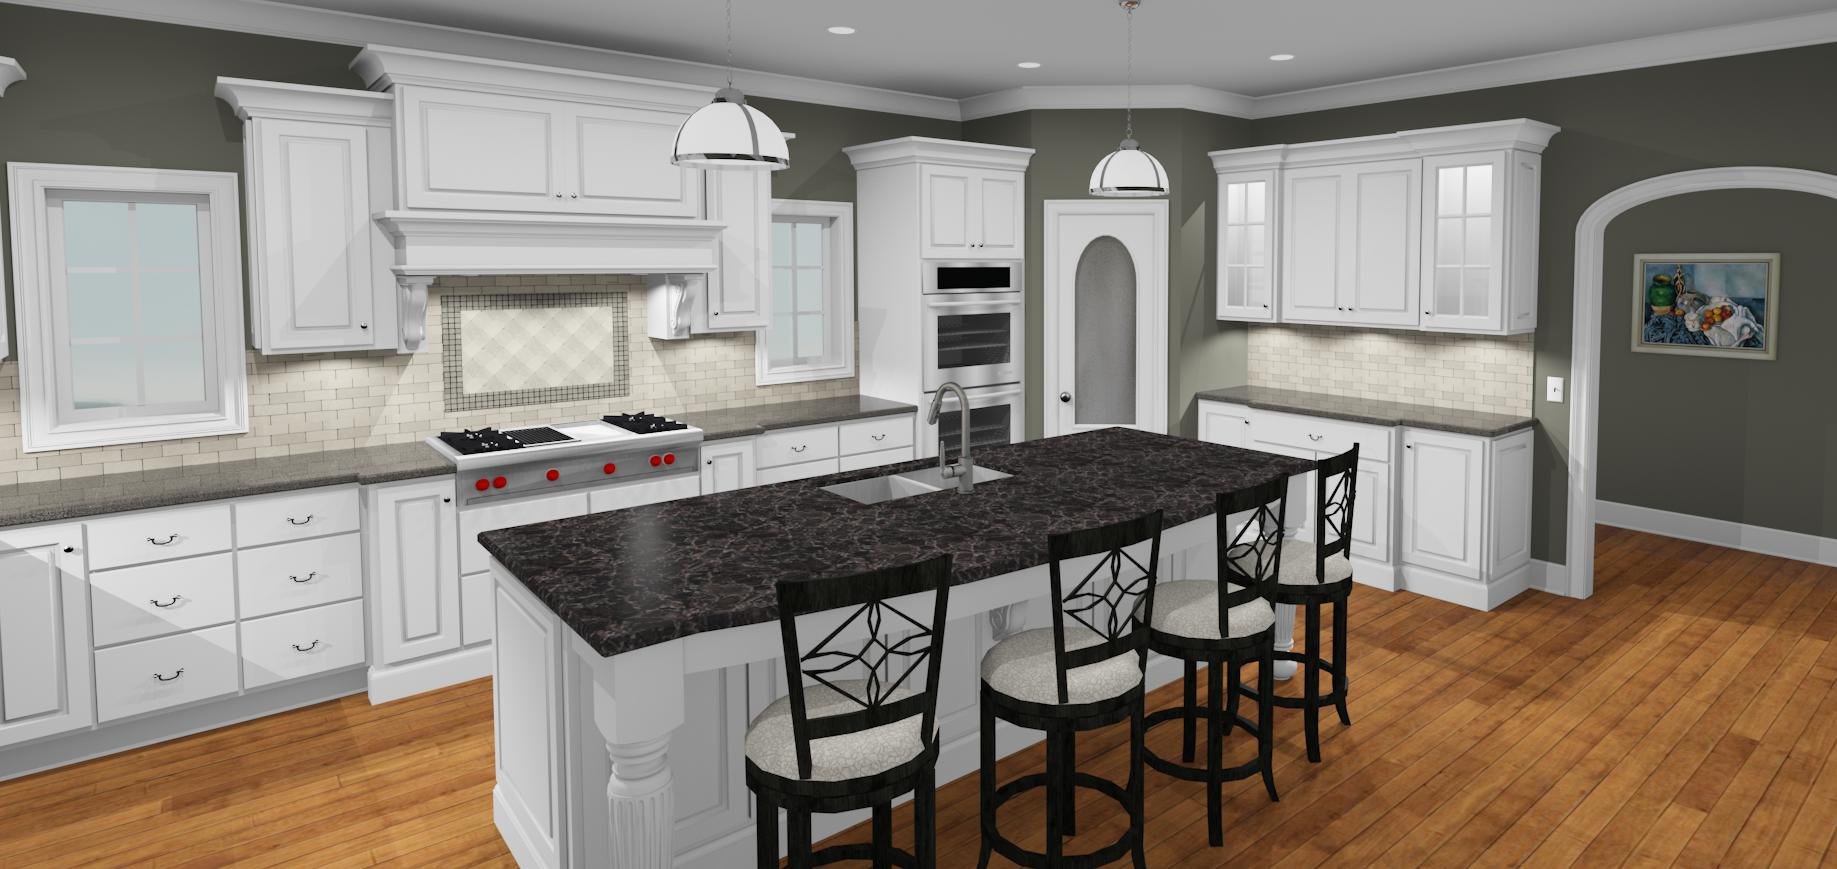 Home Improvement Kitchen Ideas 35 Unique Grey And White Kitchen Designs Unique Kitchen